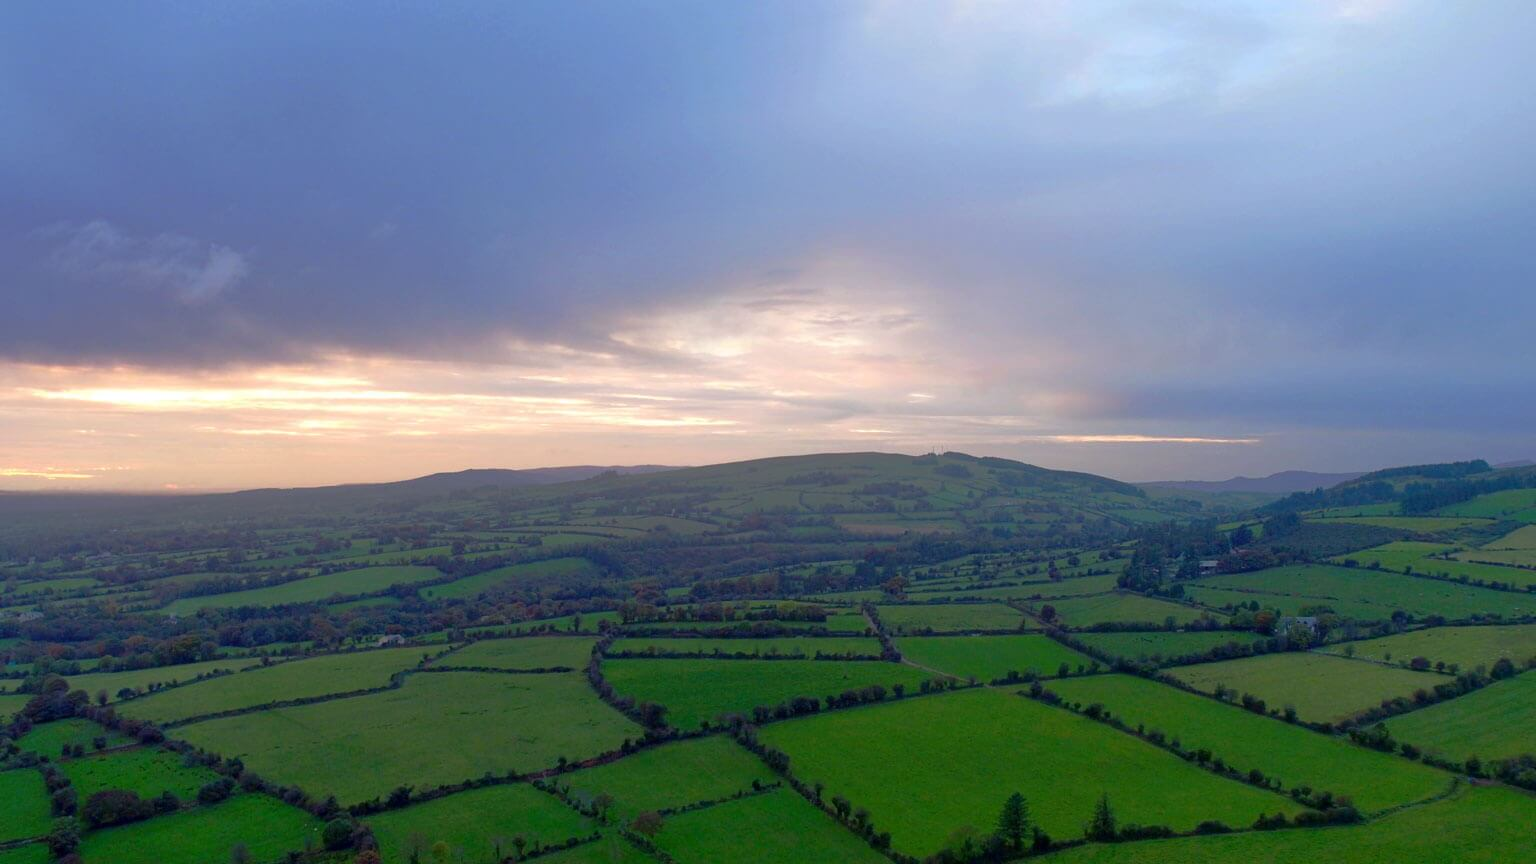 Drone shot of Tipperary Hills